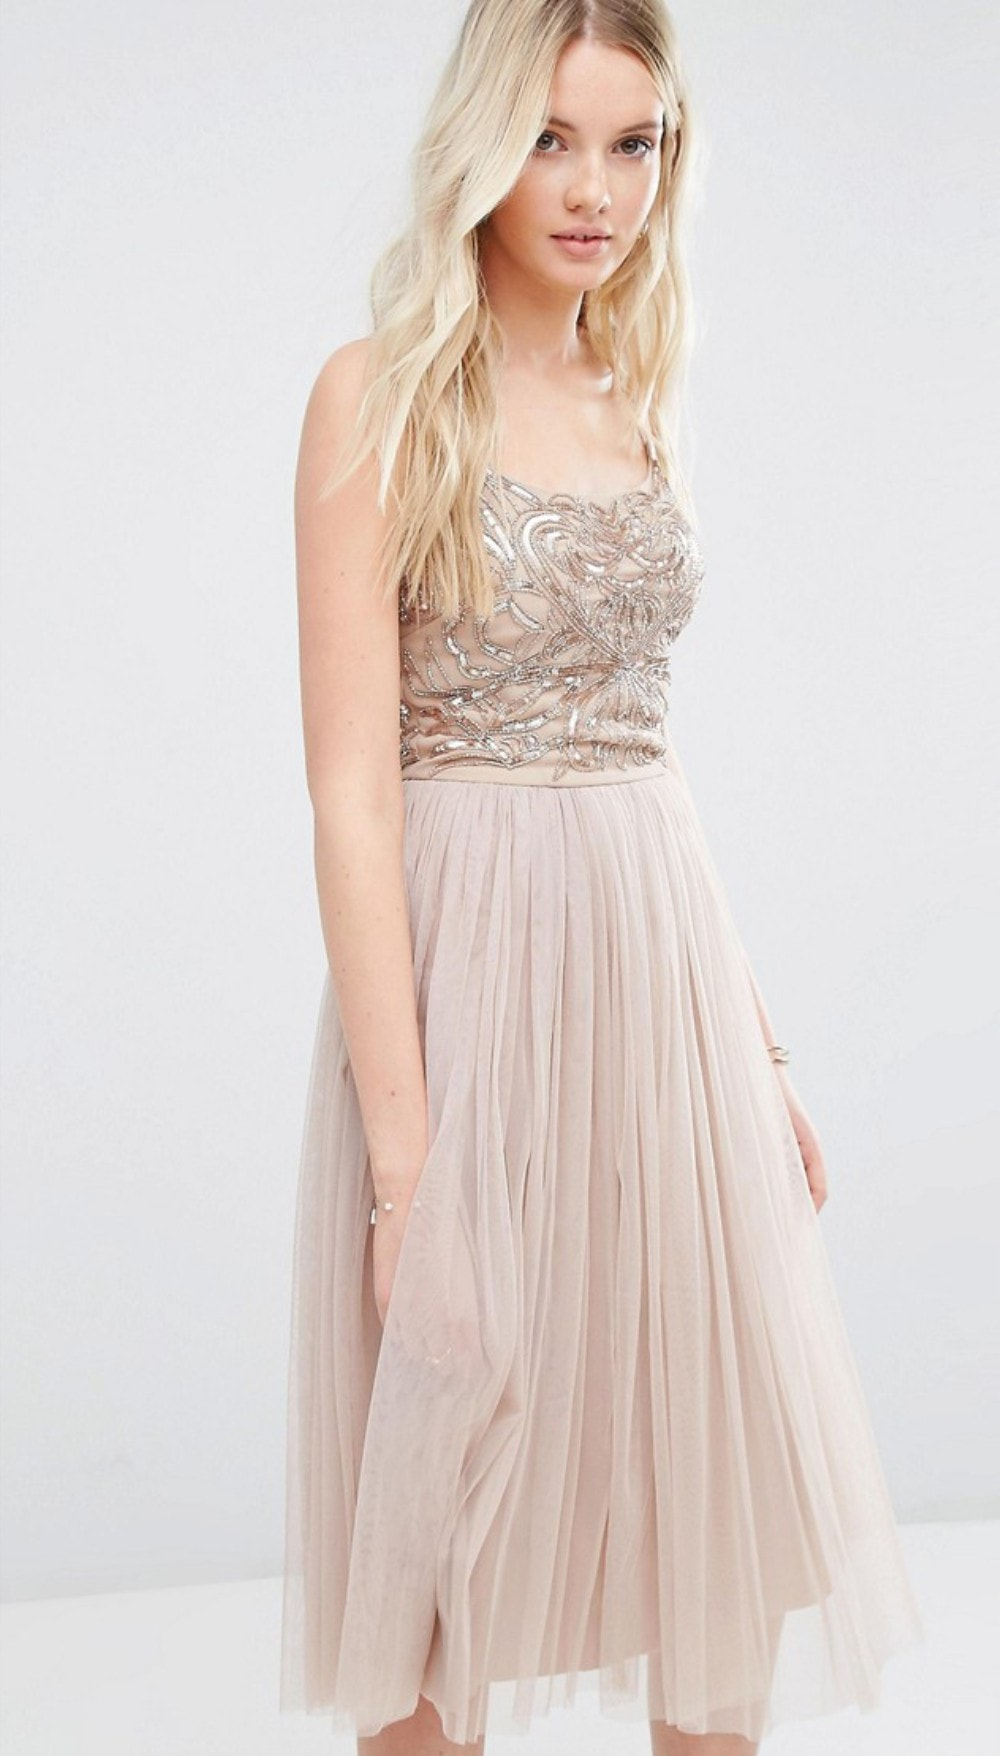 Sparkle and tulle wedding style inspiration dress for the wedding embellished top tulle skirt bridesmaid dress ombrellifo Choice Image